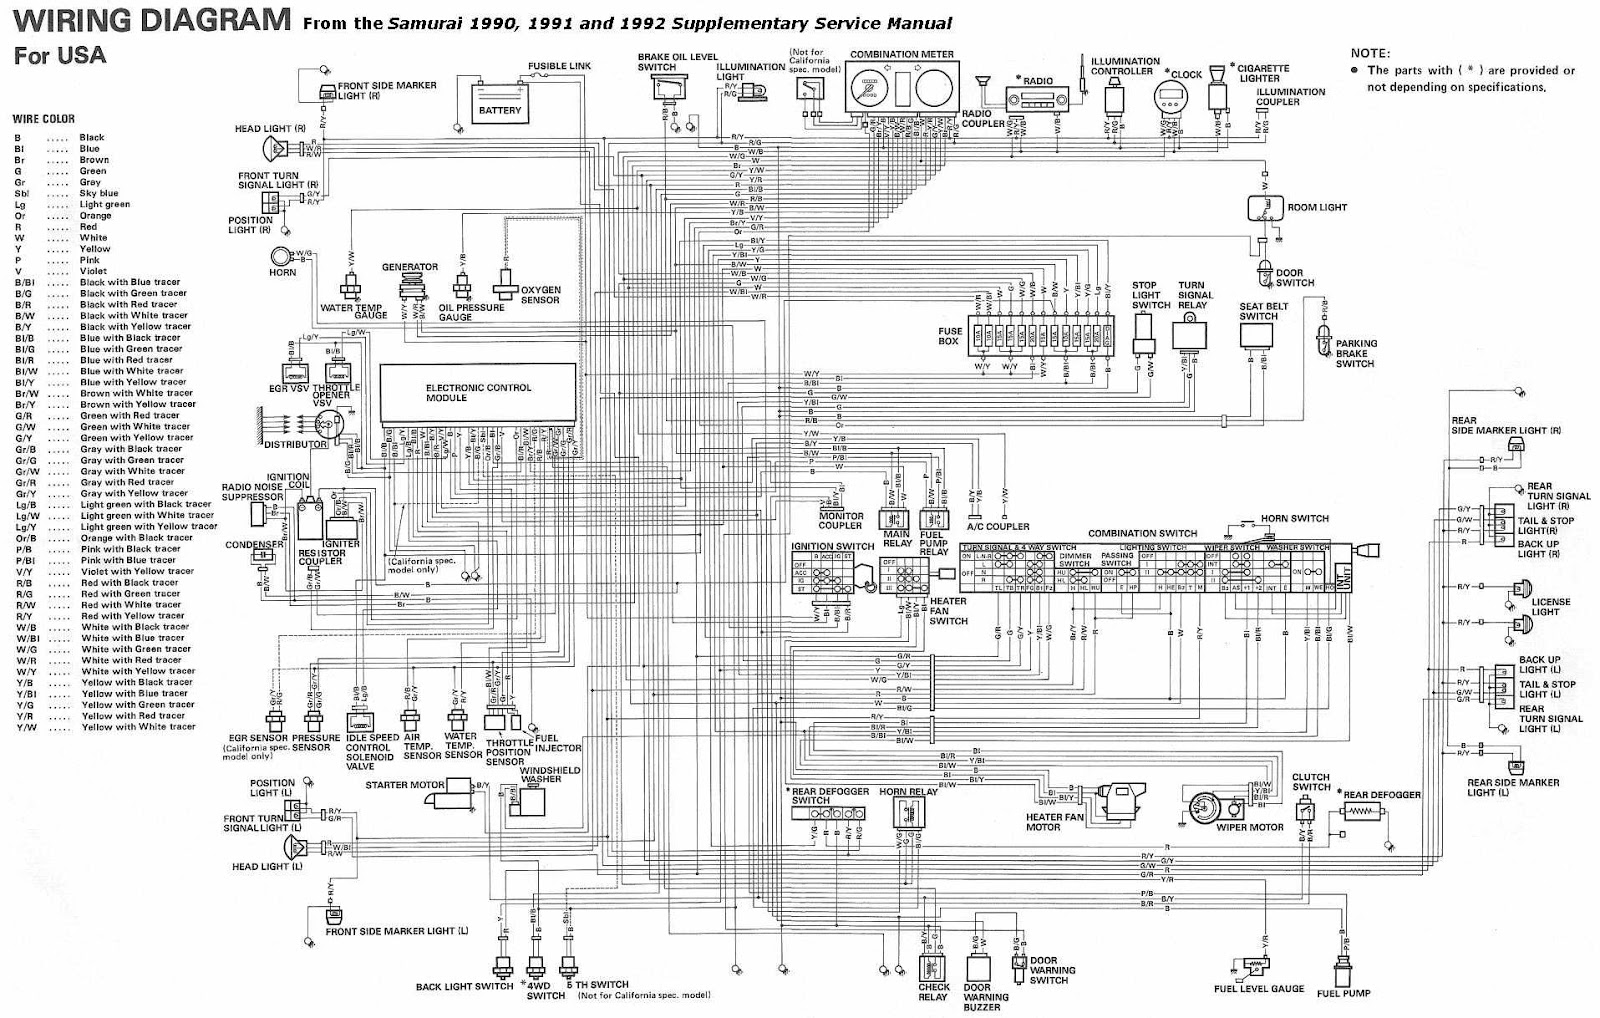 DIAGRAM] Suzuki Samurai Radio Wiring Diagram FULL Version HD Quality Wiring  Diagram - GLWDATA.PHOTOSCRATCH.FRglwdata.photoscratch.fr